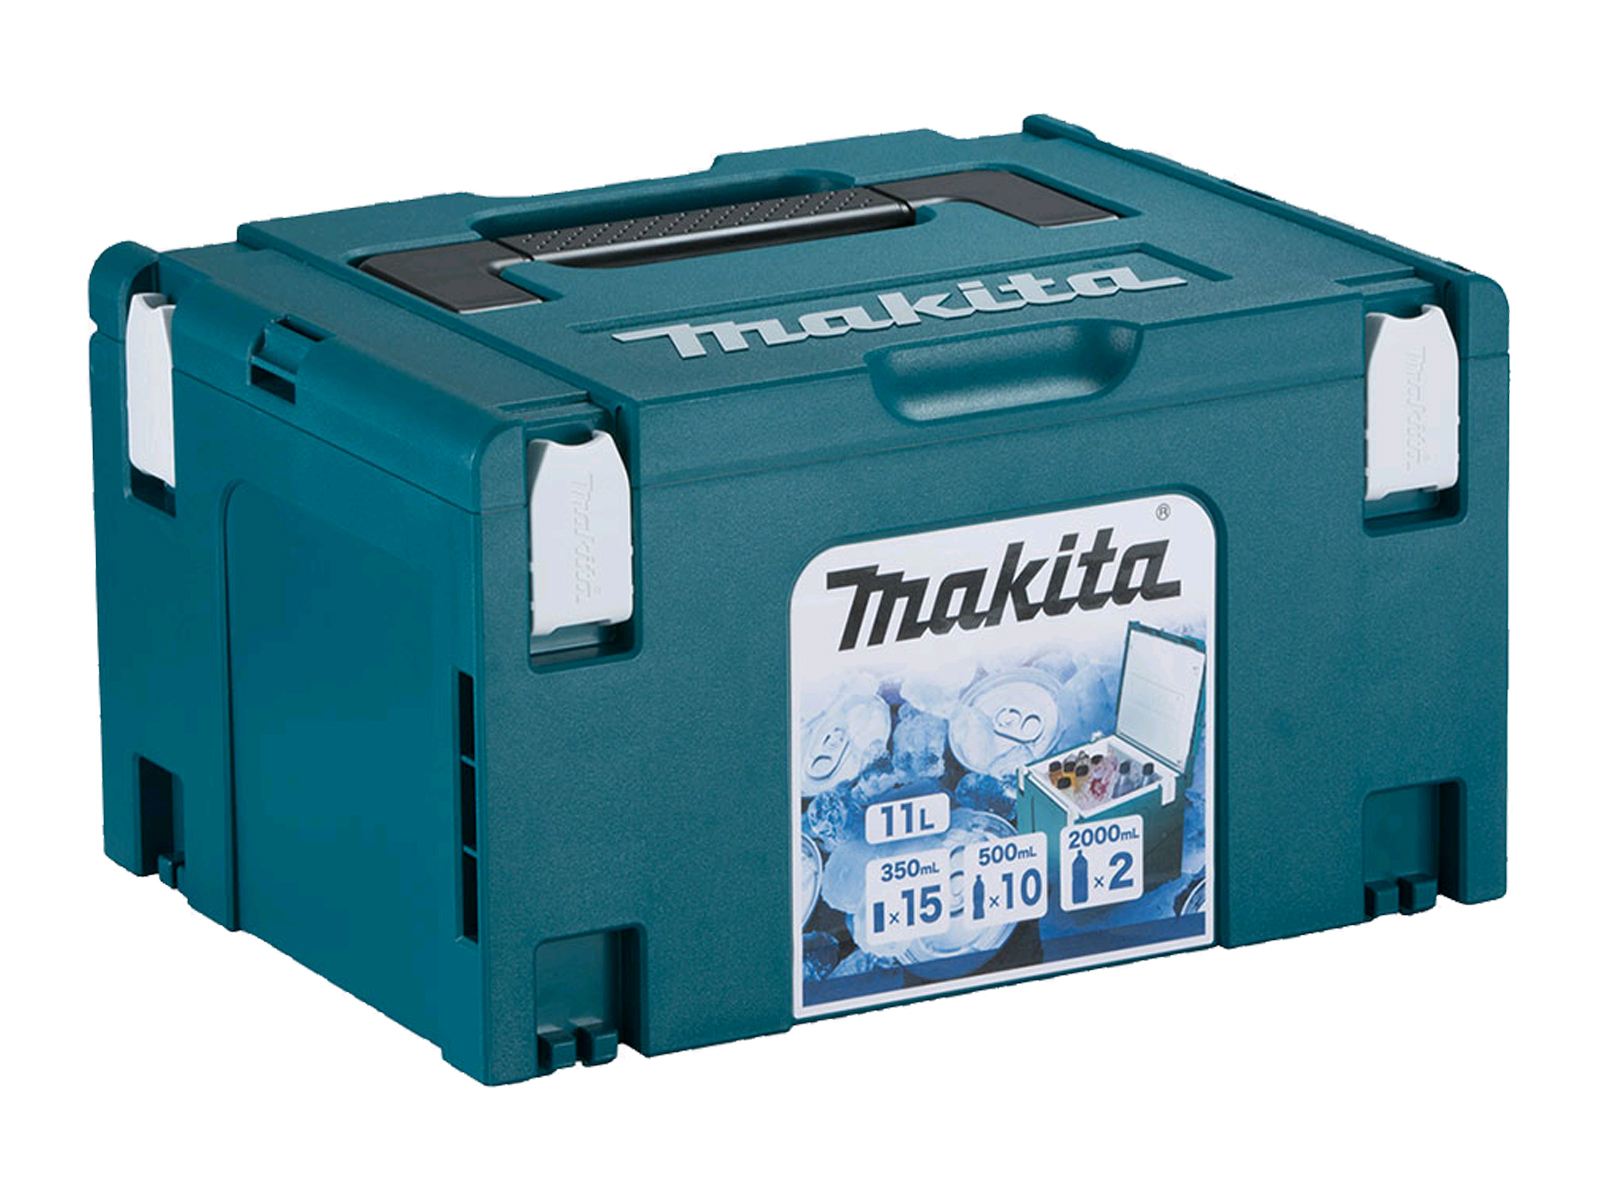 MAKITA STACKING CASE TYPE 3 - COOLER BOX - 198254-2 - 396MM X 296MM X 210MM